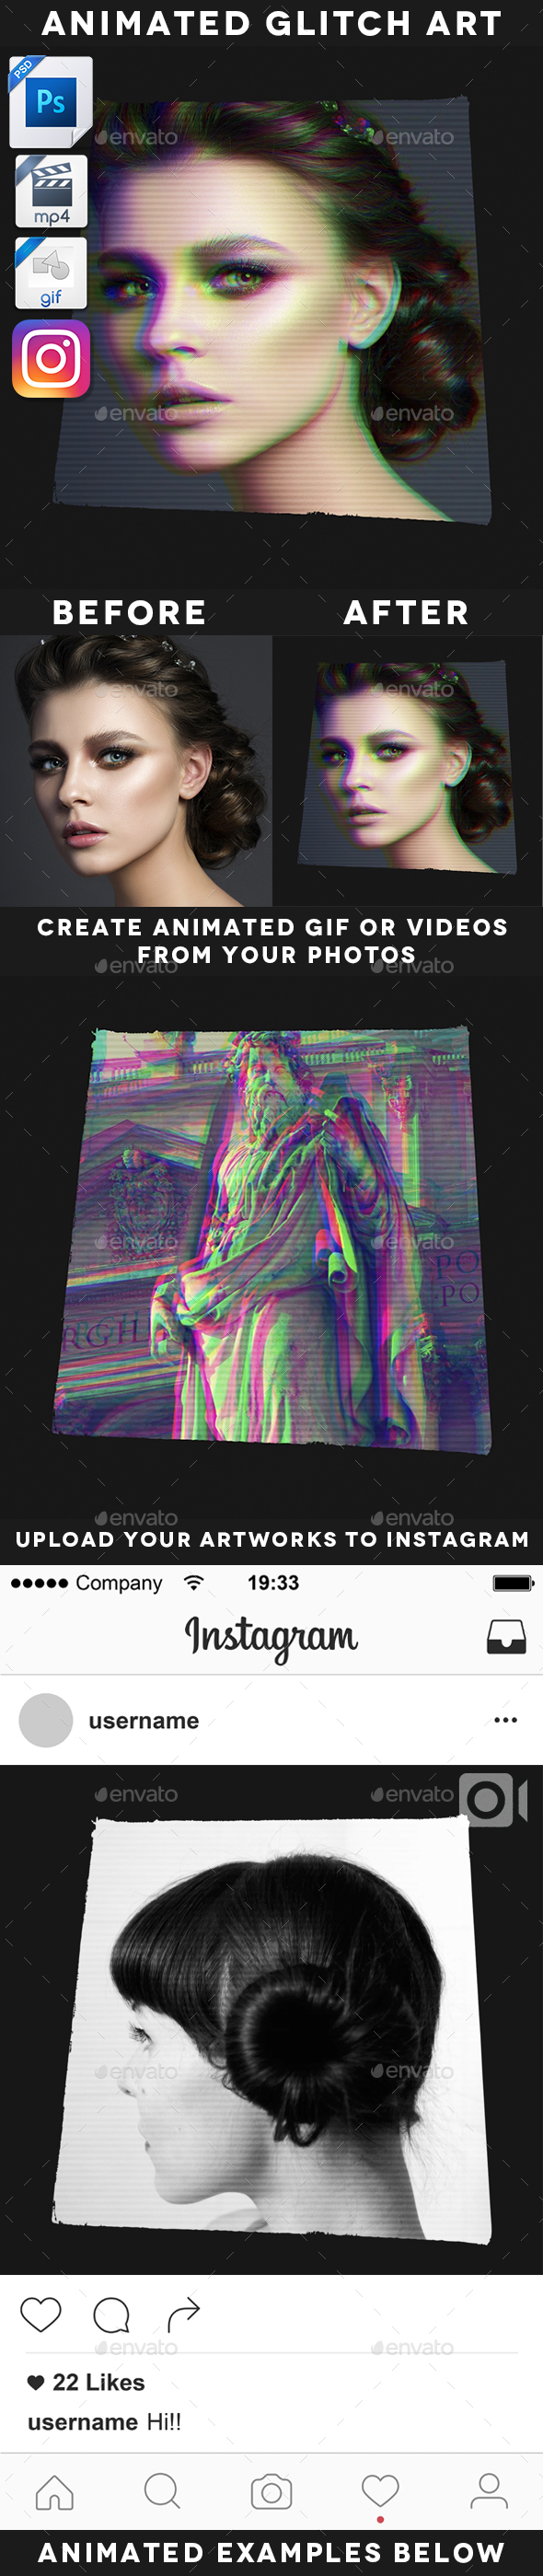 Animated Glitch Art Template - Artistic Photo Templates